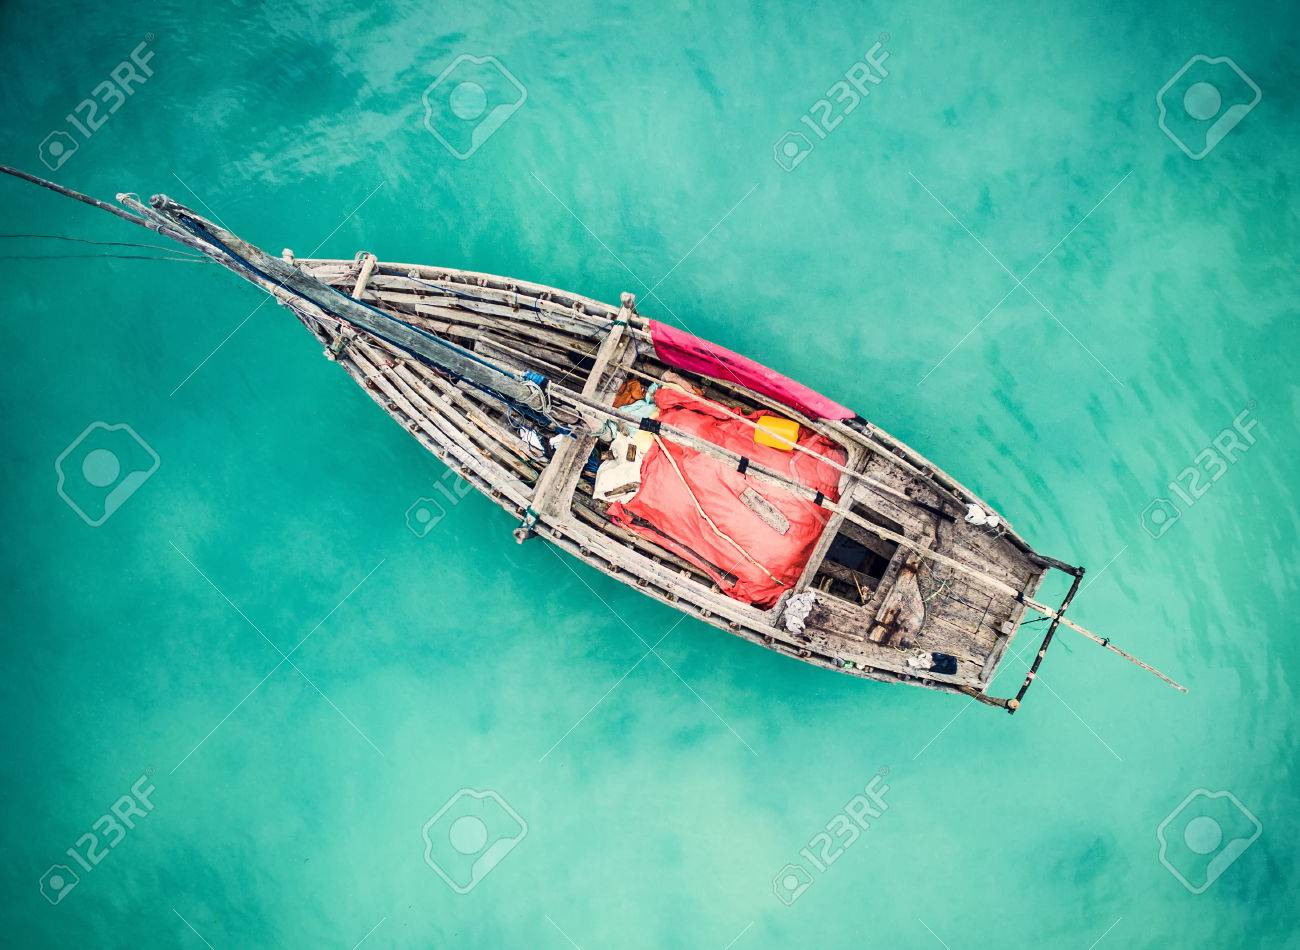 https://previews.123rf.com/images/gekaskr/gekaskr1705/gekaskr170500143/77658198-lonely-fishing-boat-in-clean-turquoise-ocean-aerial-photo-top-view.jpg